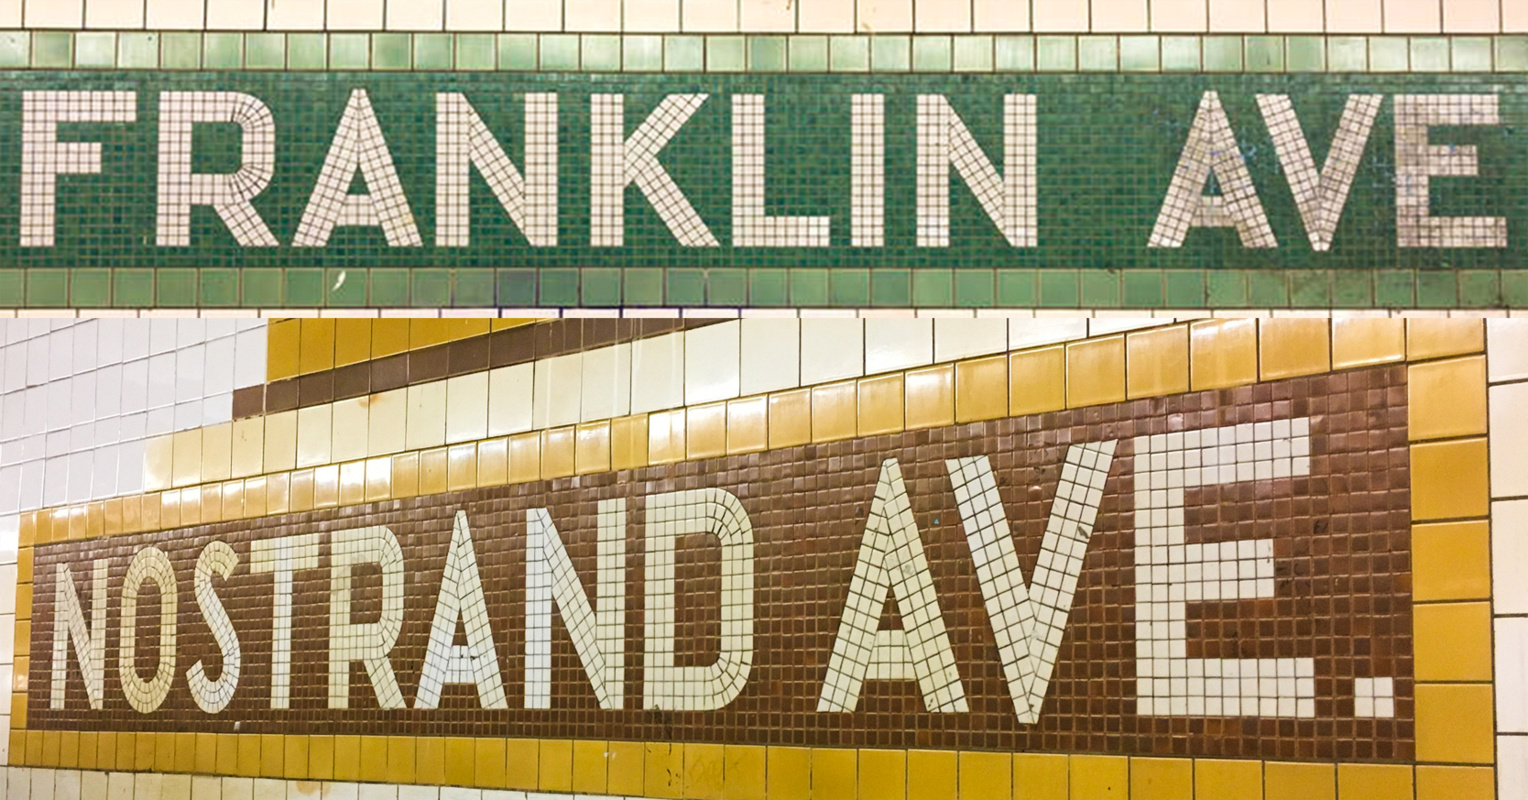 The Hidden Meaning Behind the Colors of the NYC Subway